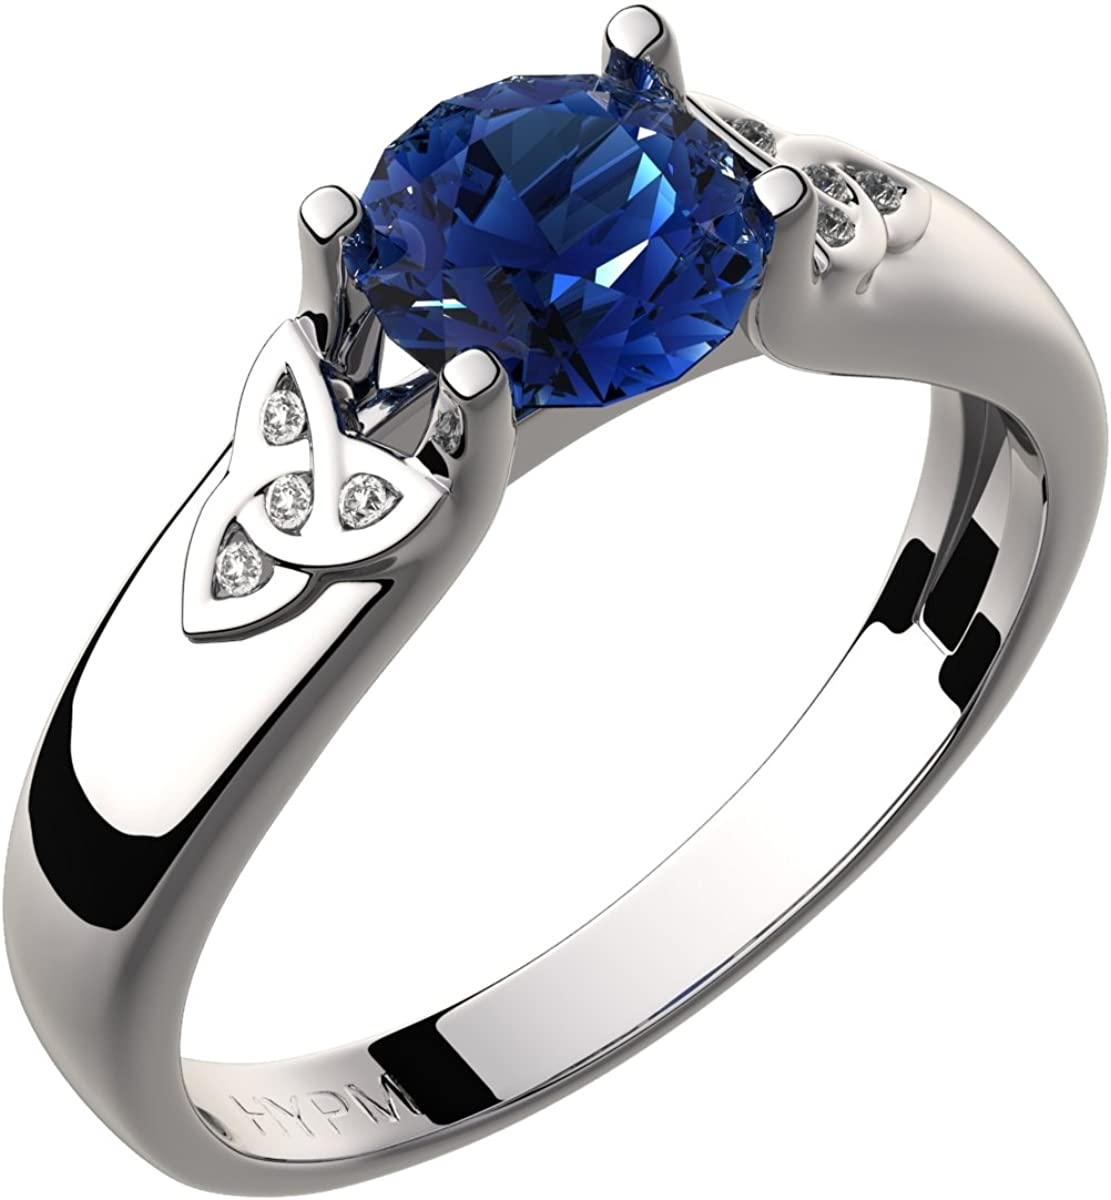 Amazon.com: GWG Women's Rings Gift Sterling Silver Celtic Ring Sapphire  Blue Zircon Stone and Trinity Knots Adorned with Crystals for Women: Jewelry